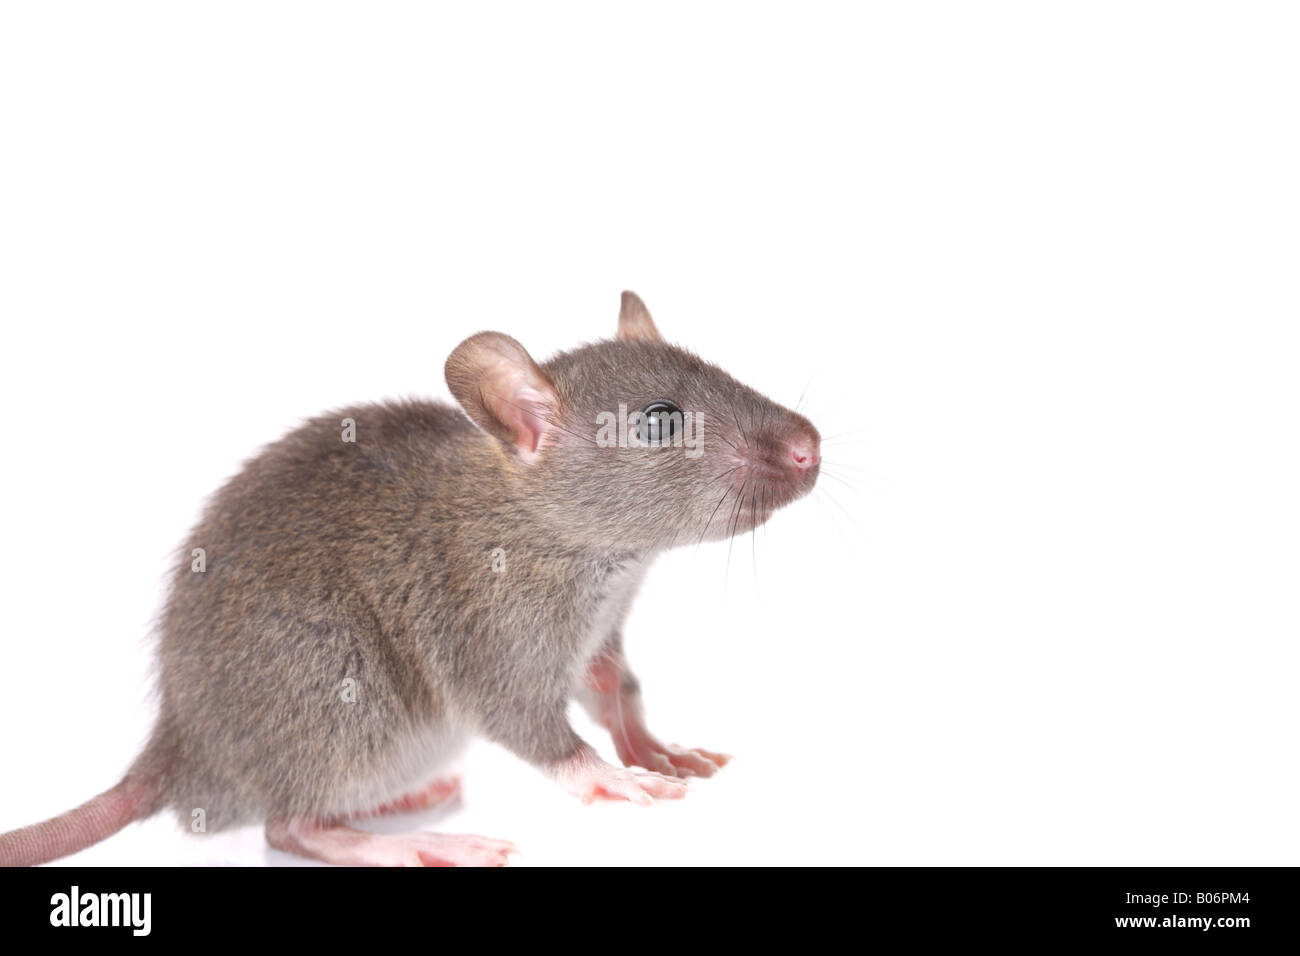 Curios mouse - Stock Image